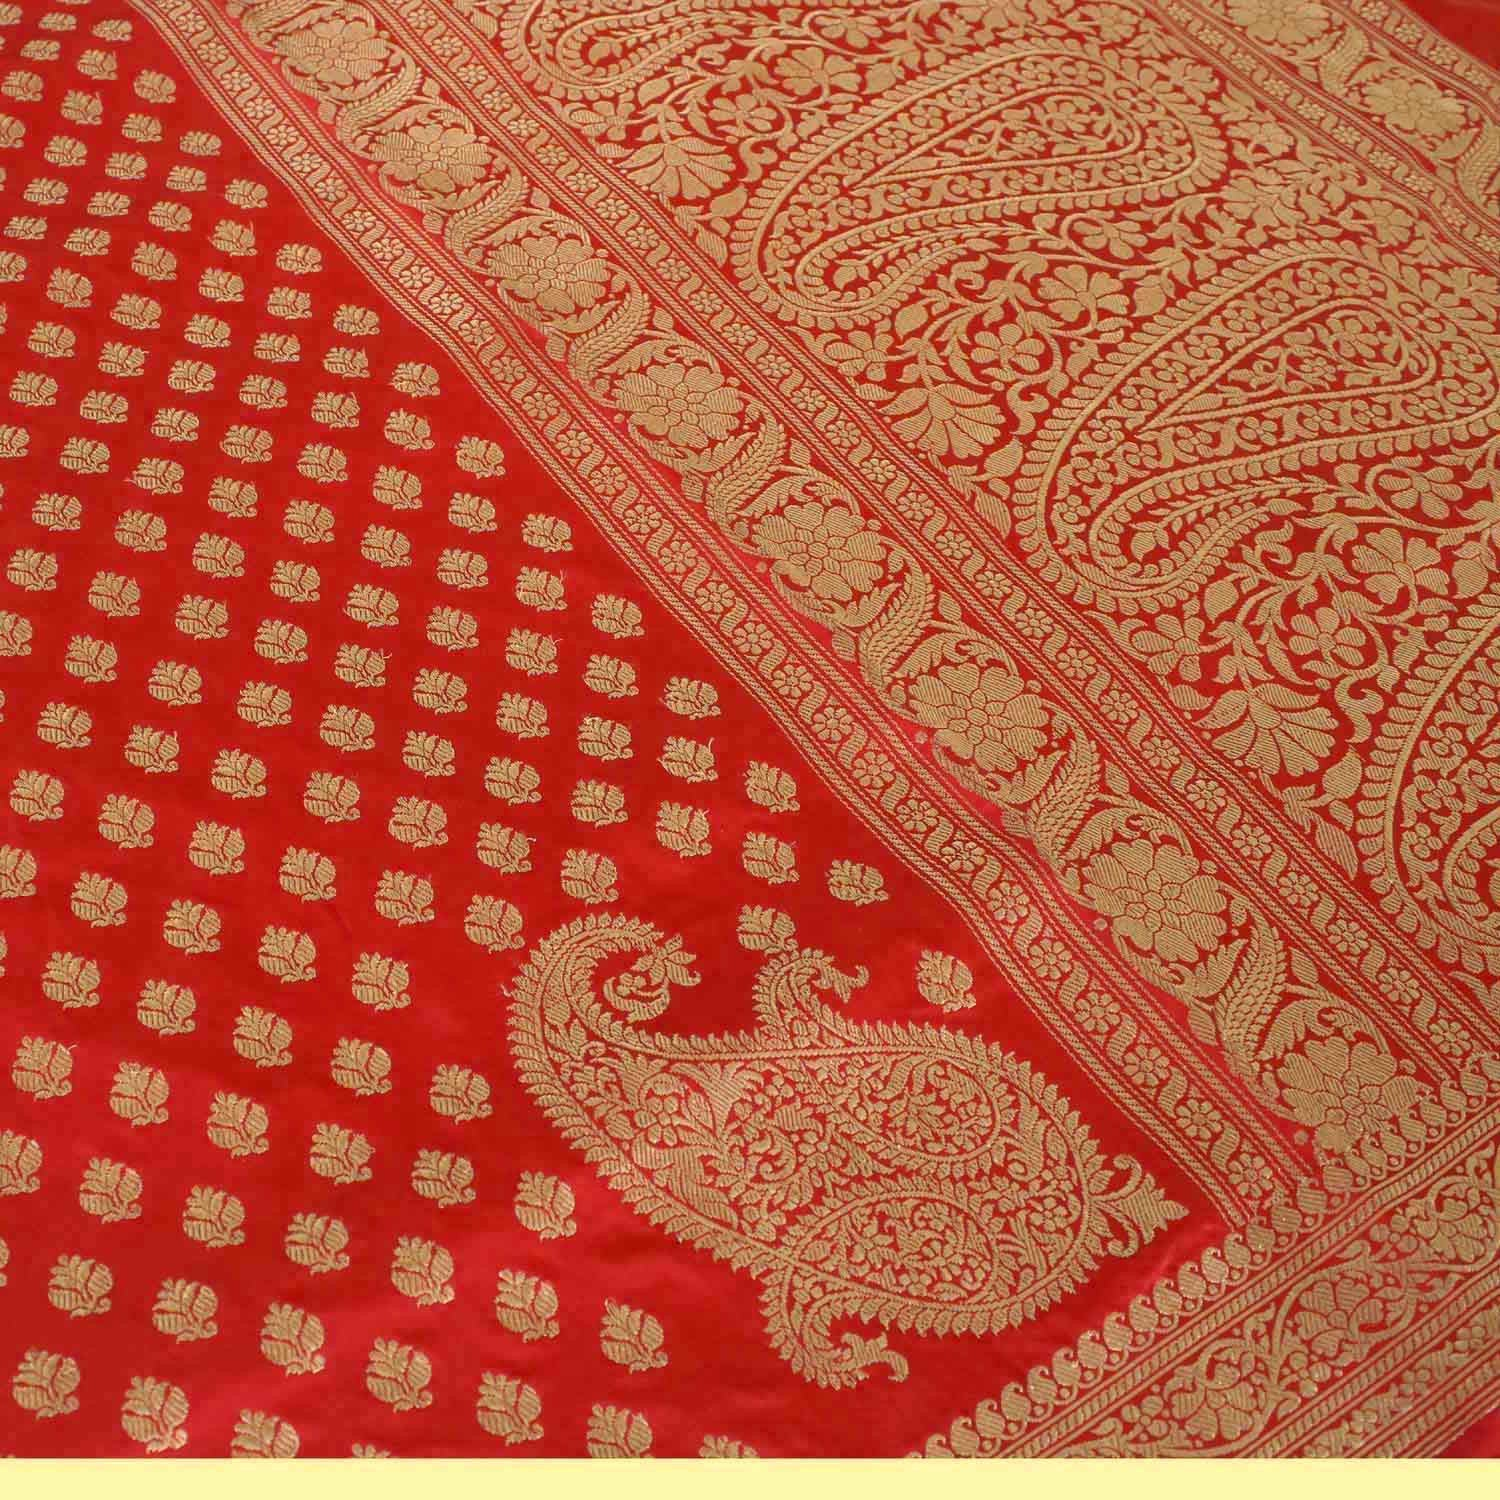 Red Pure Katan Silk Banarasi Handwoven Saree - Tilfi - 3